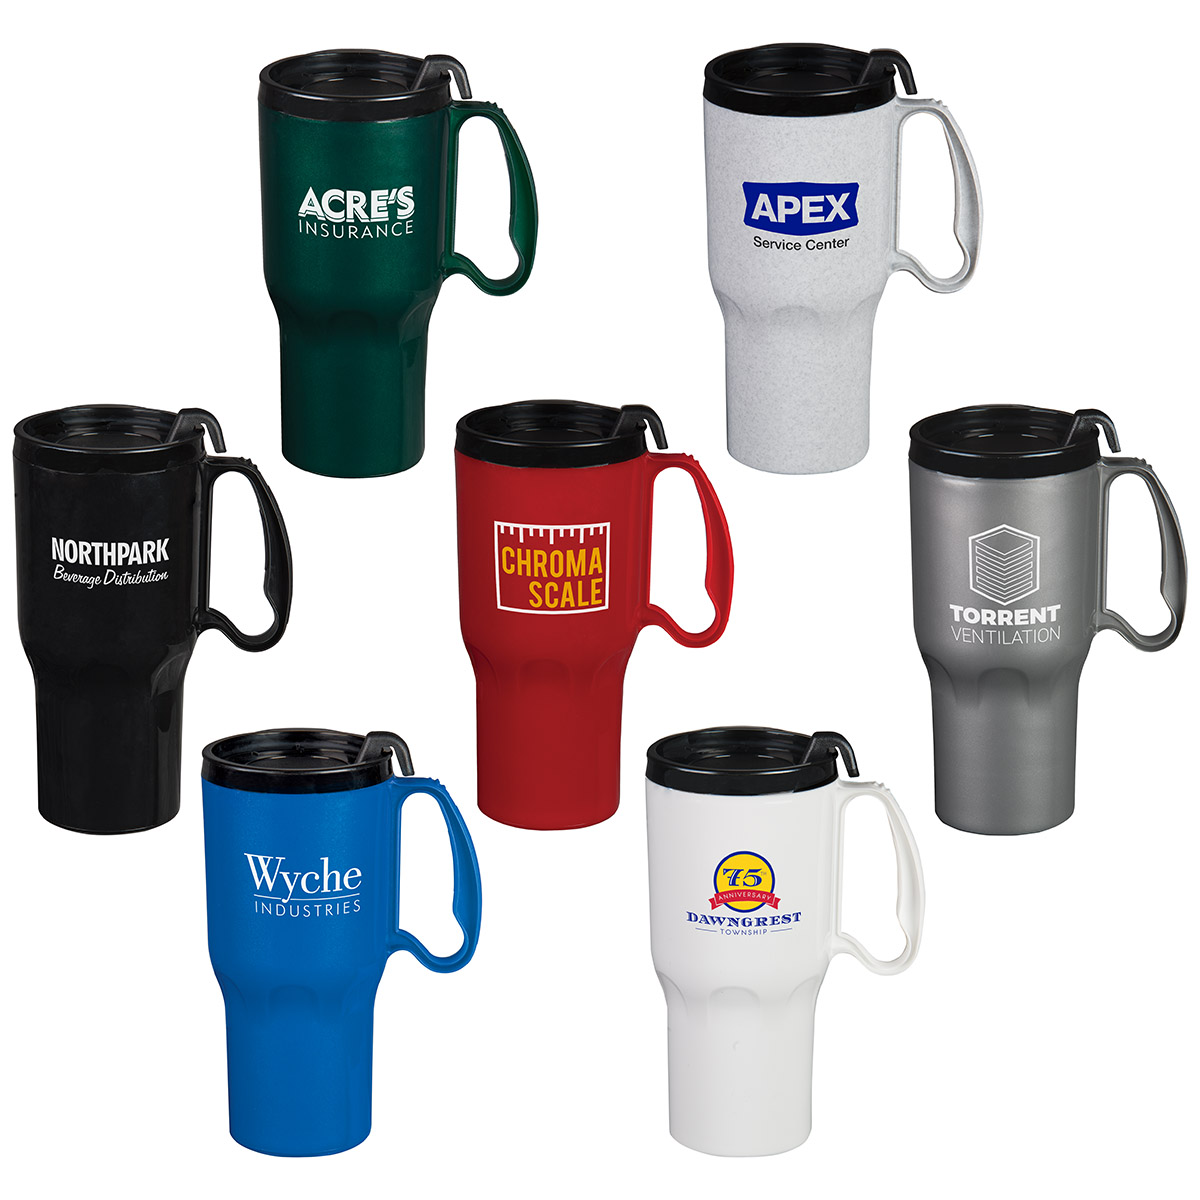 DERBY 21 oz. Sports Mug, DWI-DB17 - 1 Colour Imprint